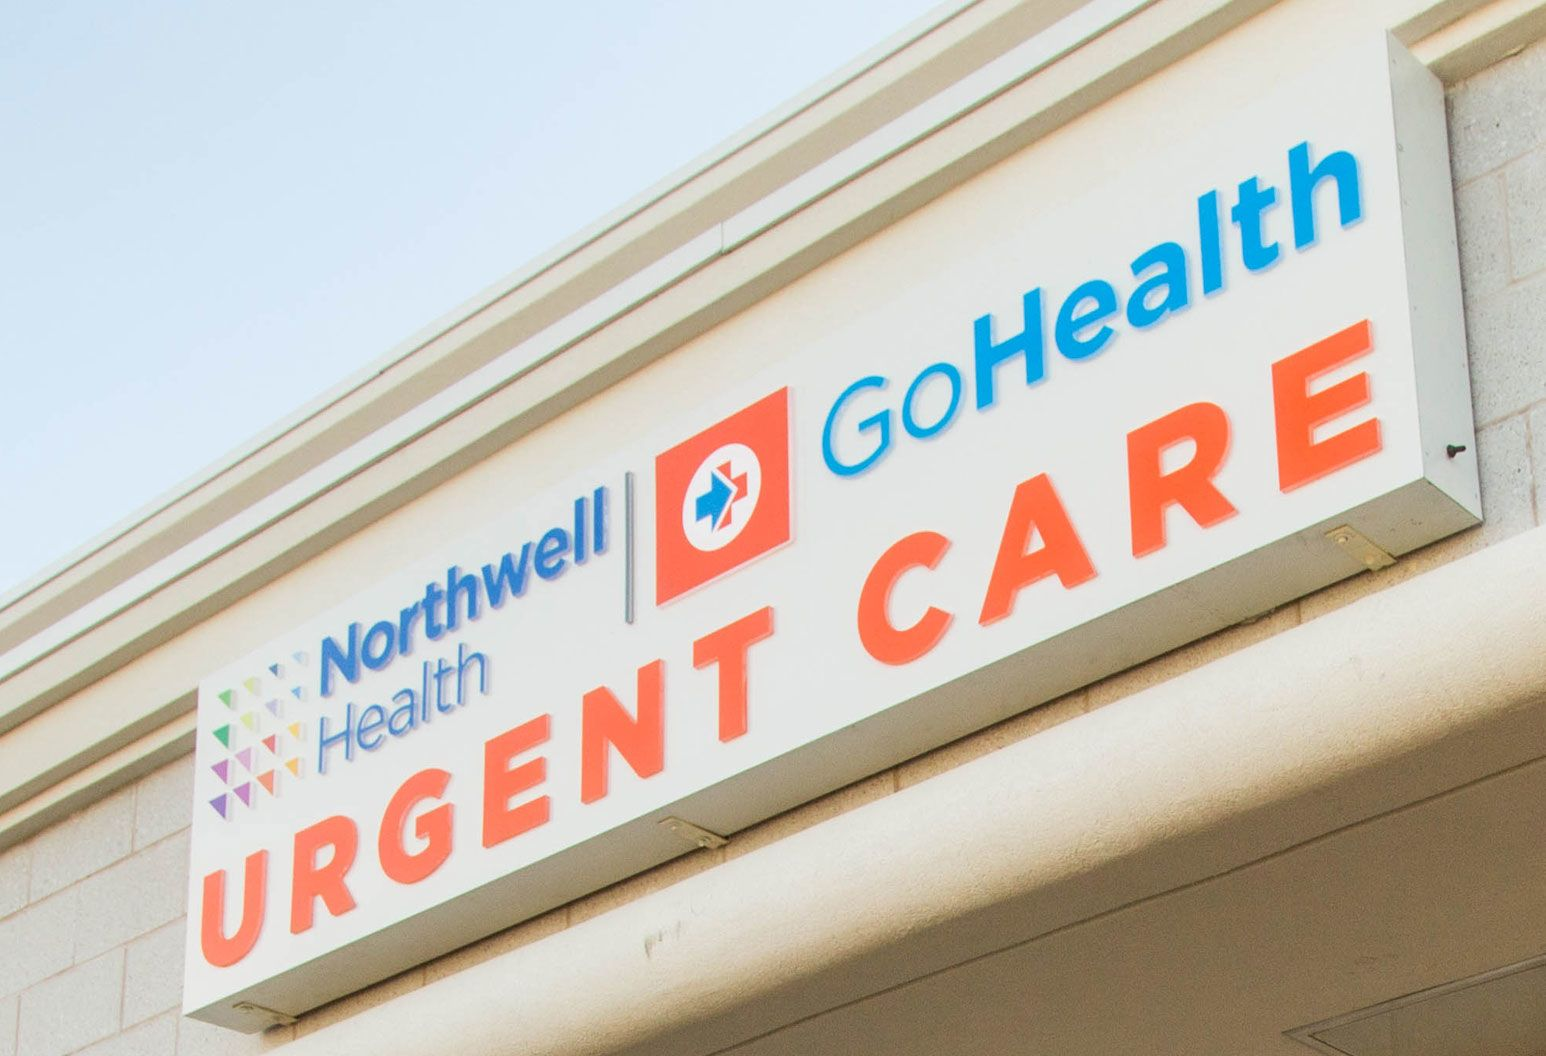 """Northwell Health, GoHealth, Urgent Care"" sign"